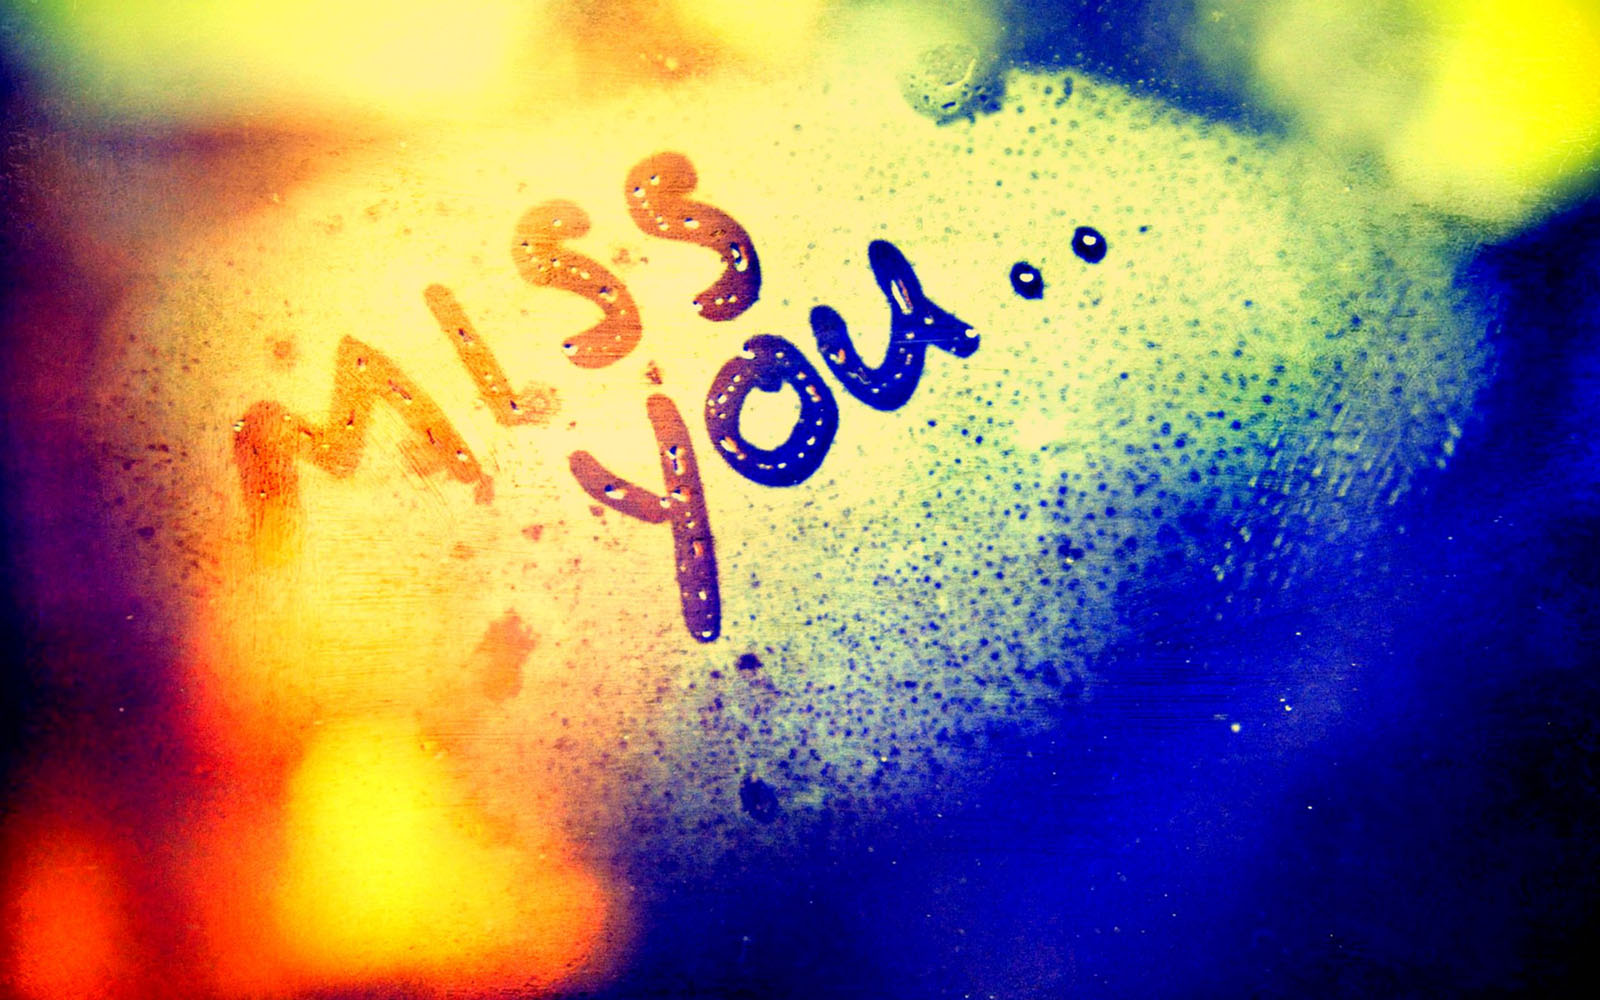 Love Wallpapers Miss : wallpaper: I Miss You Wallpapers